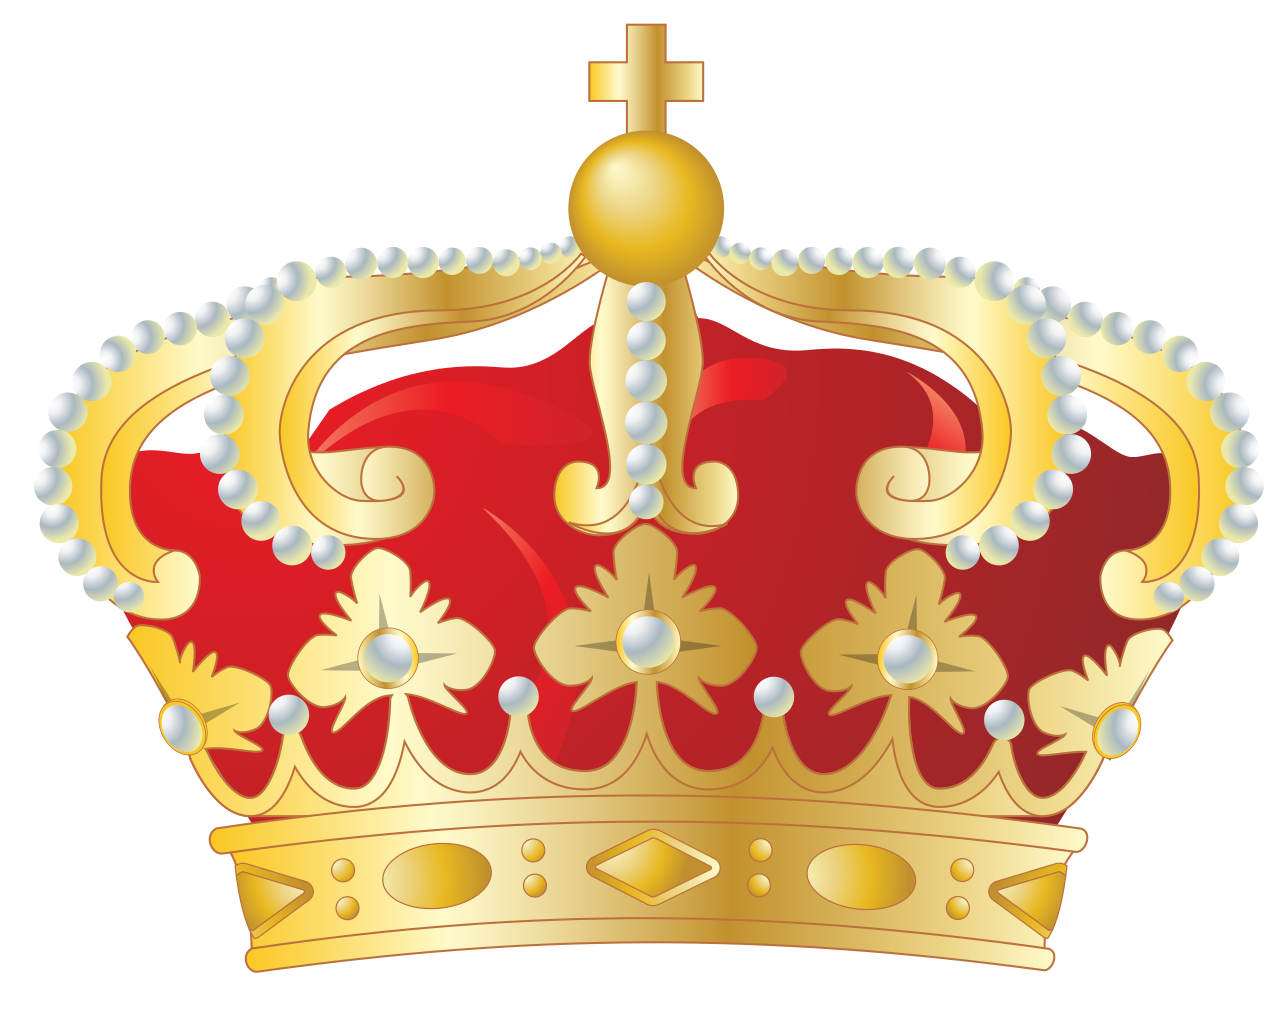 List of royal crowns - Wikipedia